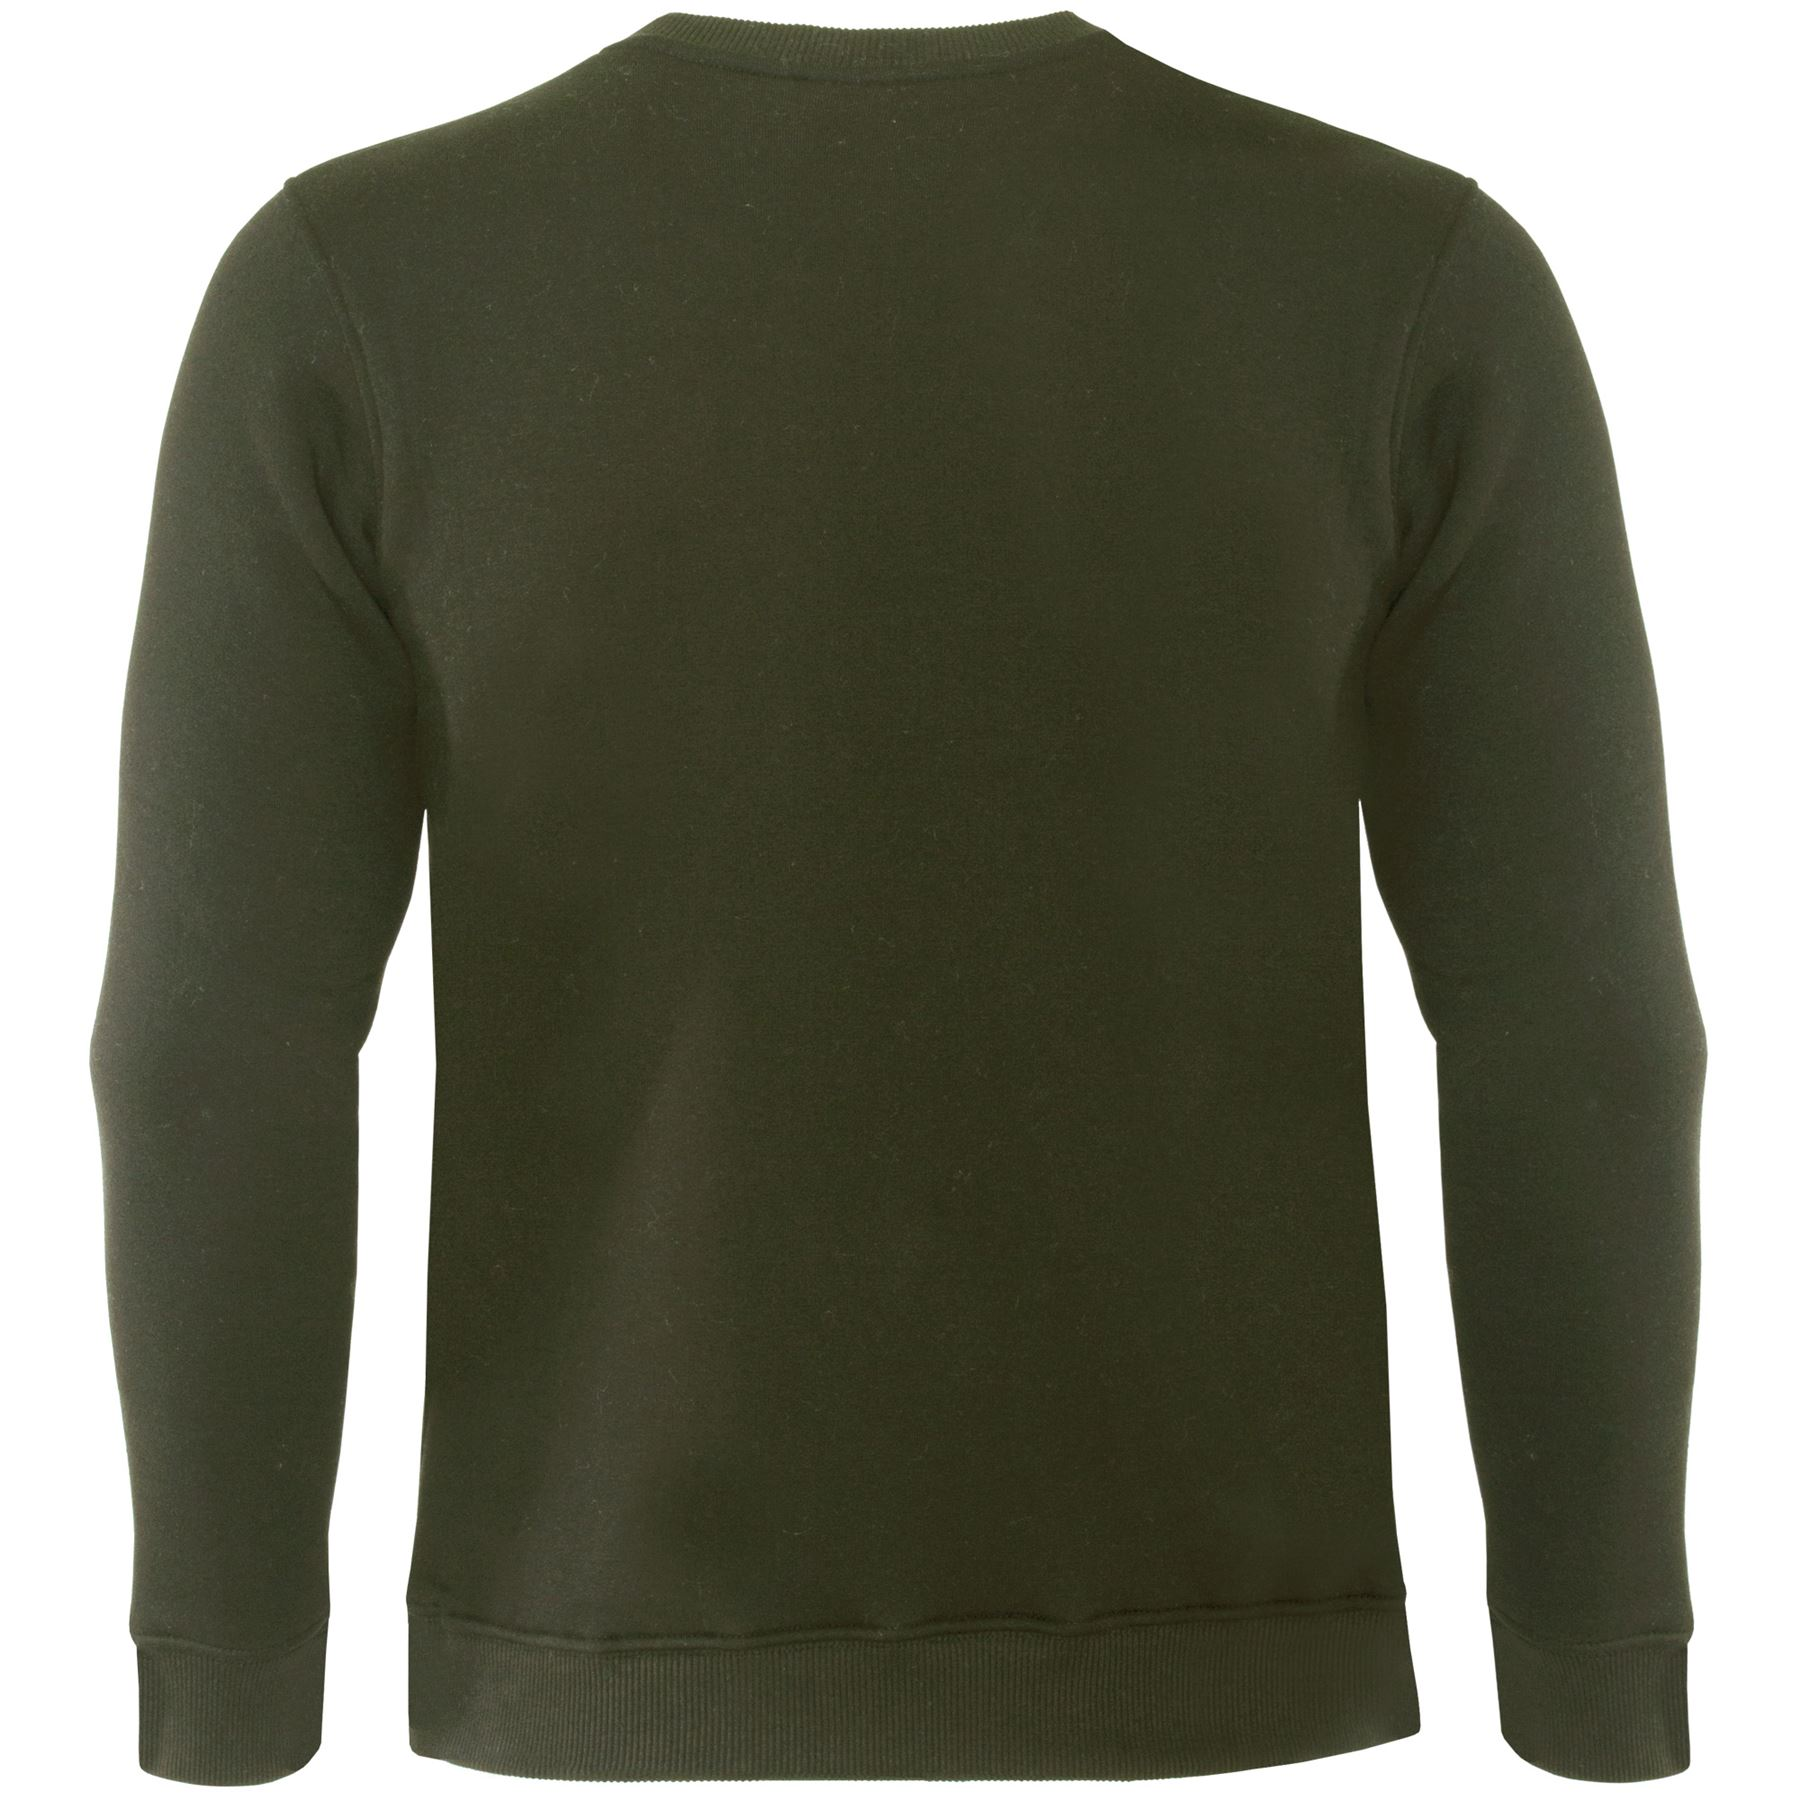 Mens-Crew-Neck-Sweatshirt-Jumper-Casual-Plain-Jersey-Fleece-Sweat-Top-Pullover thumbnail 11